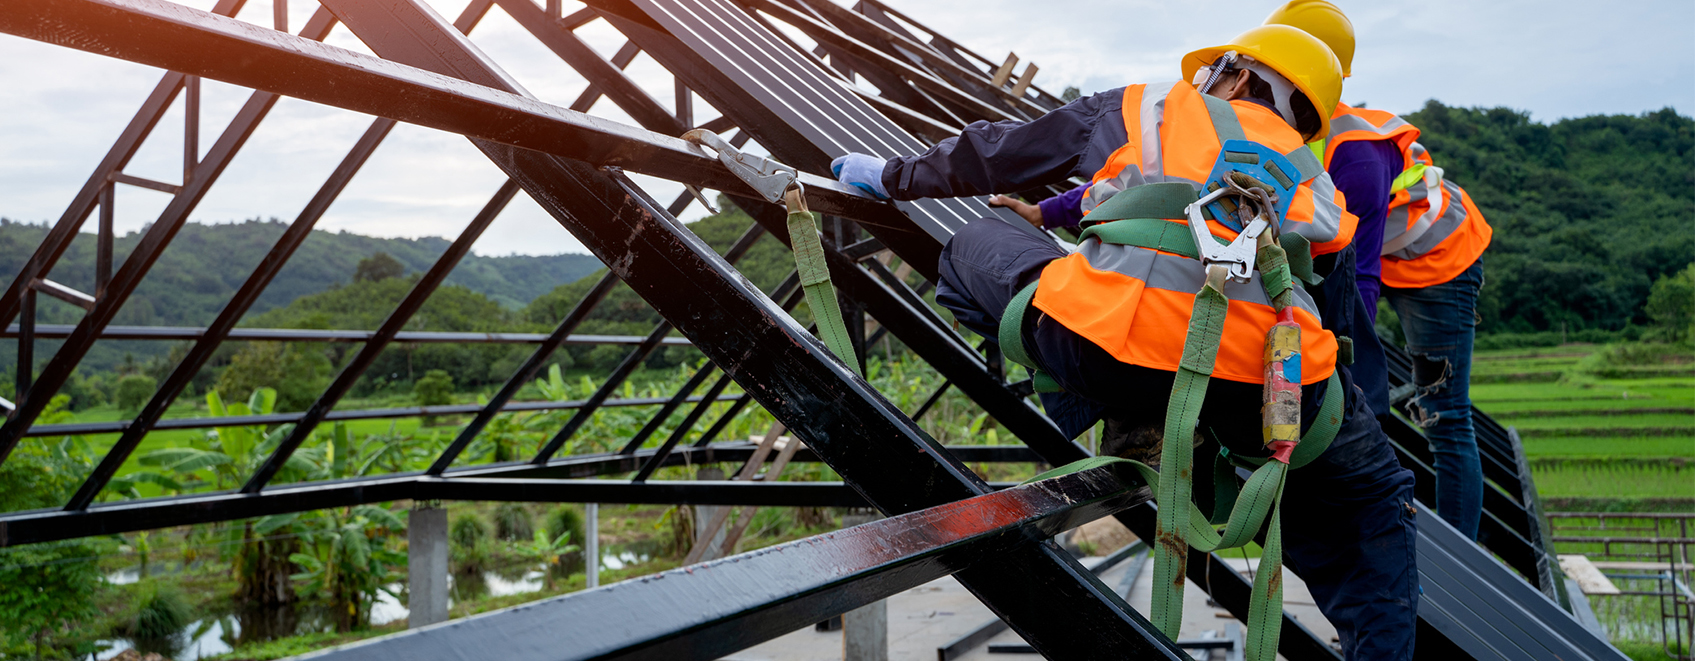 construction workers on roof, with safety harnesses on